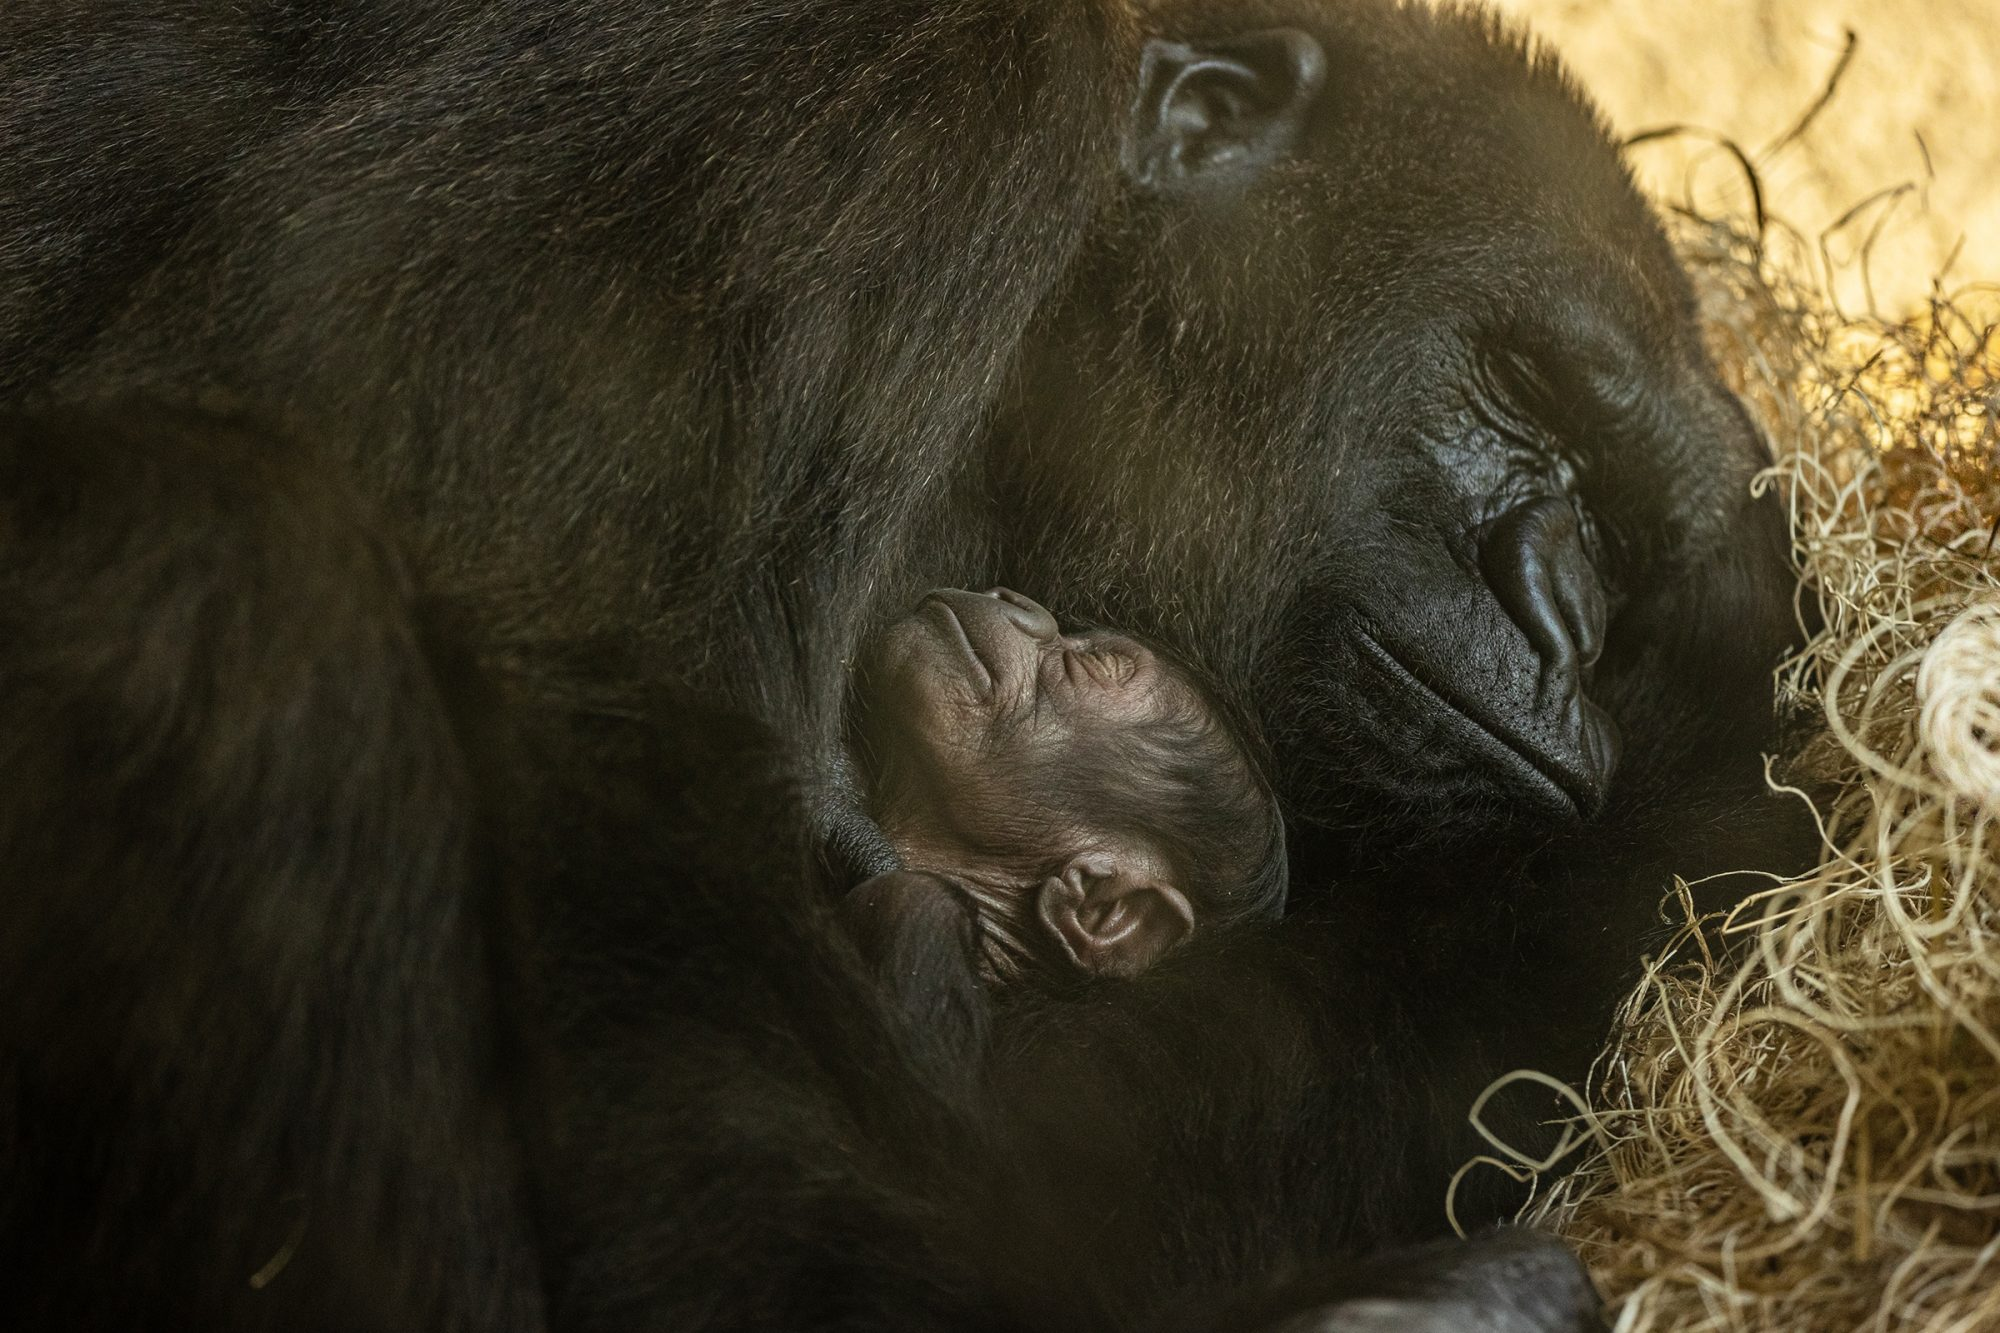 Florida Zoo Welcomes 'Critically Endangered' Baby Gorilla: 'We Have Many Reasons to Celebrate'